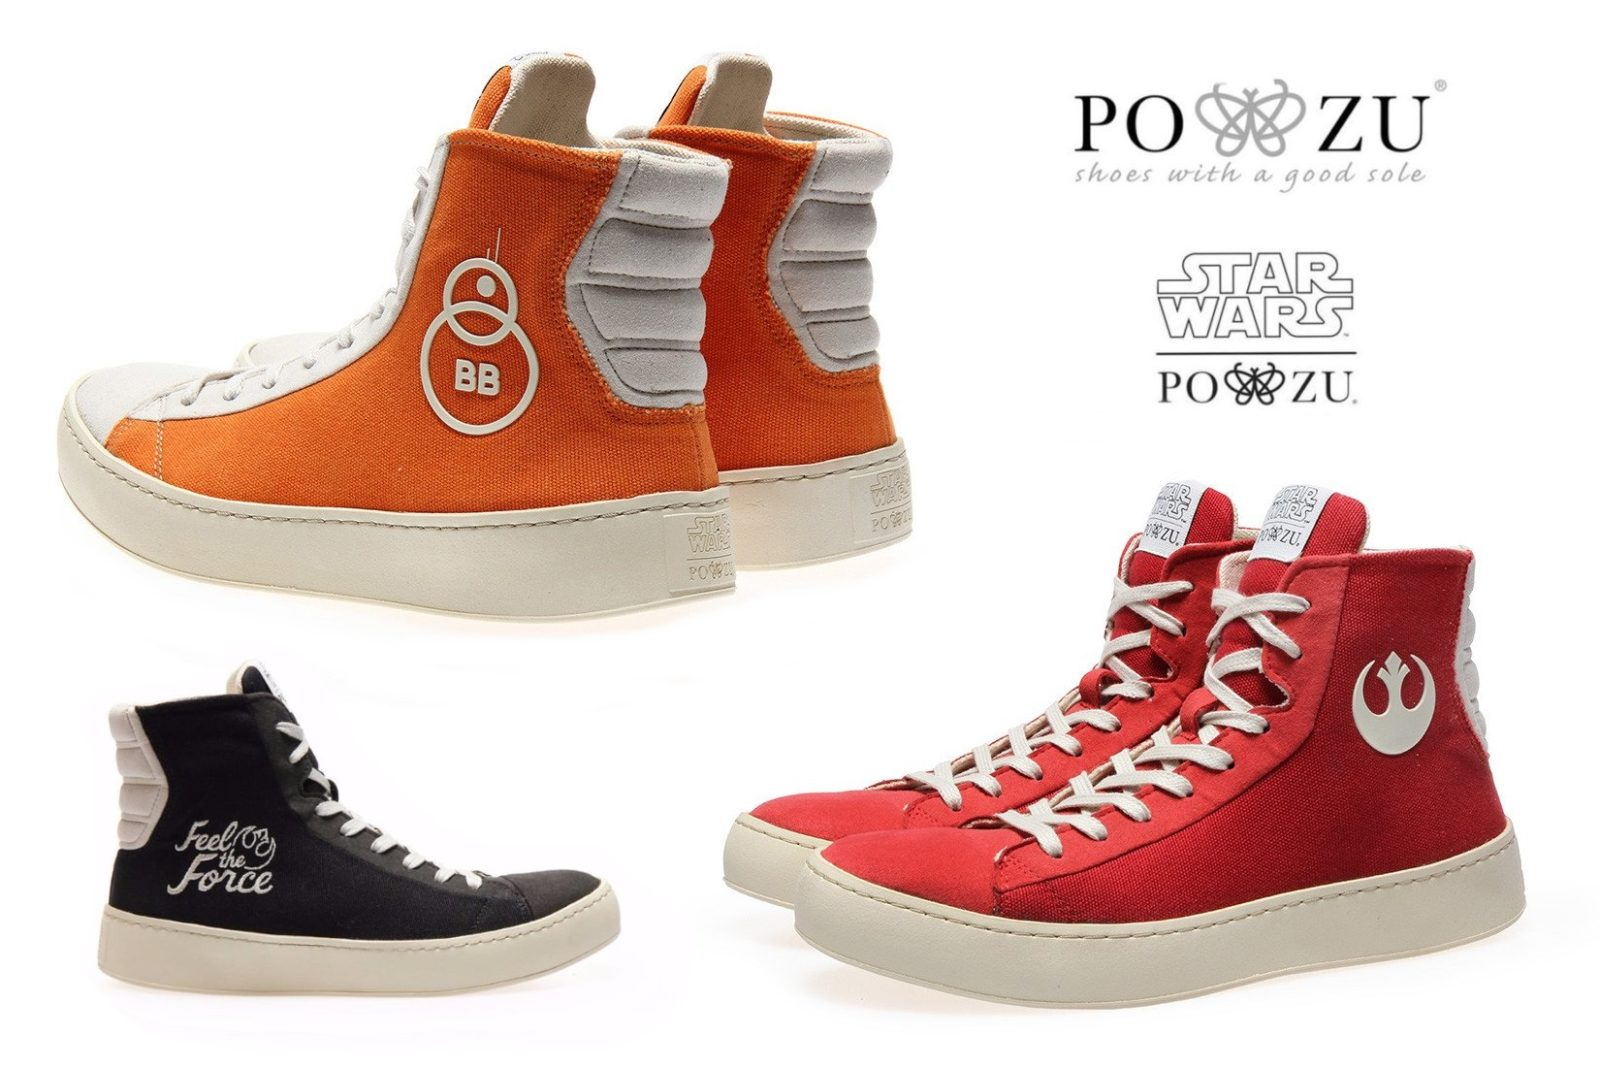 Po-Zu Footwear - 25% off Selected Star Wars Sneaker Styles